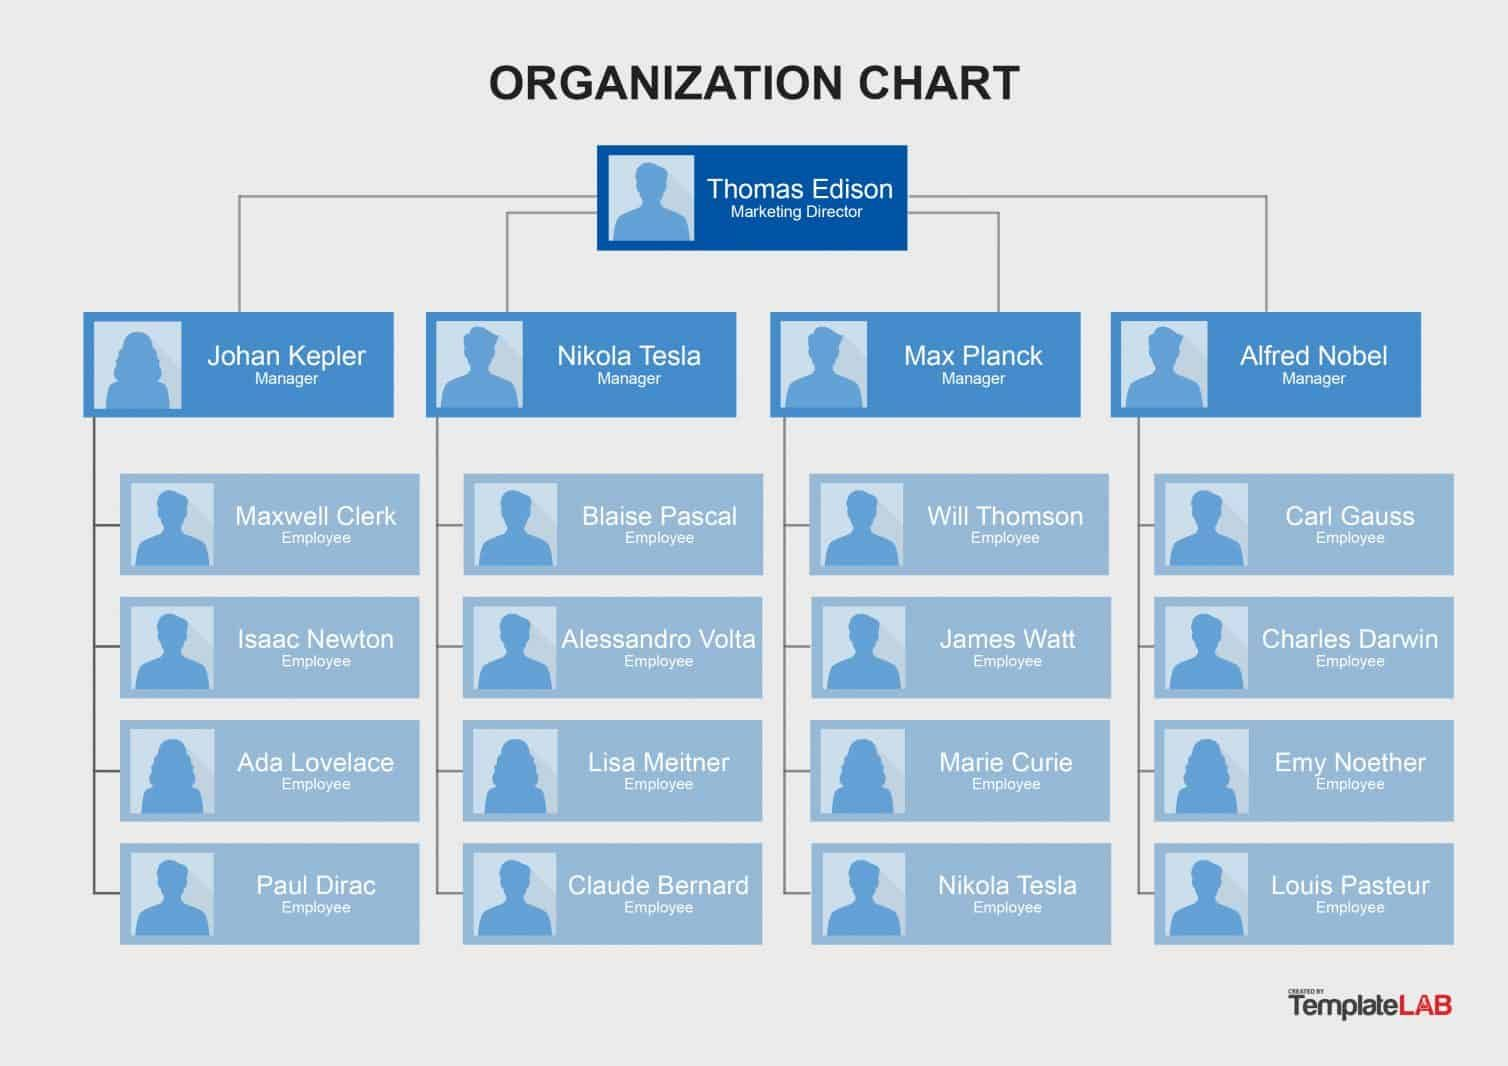 Small Restaurant Organizational Chart Template Pdf Word Apple Pages Google Docs Powerpoint Apple Keynote Google Slides Organizational Chart Organization Chart Organizational Chart Design